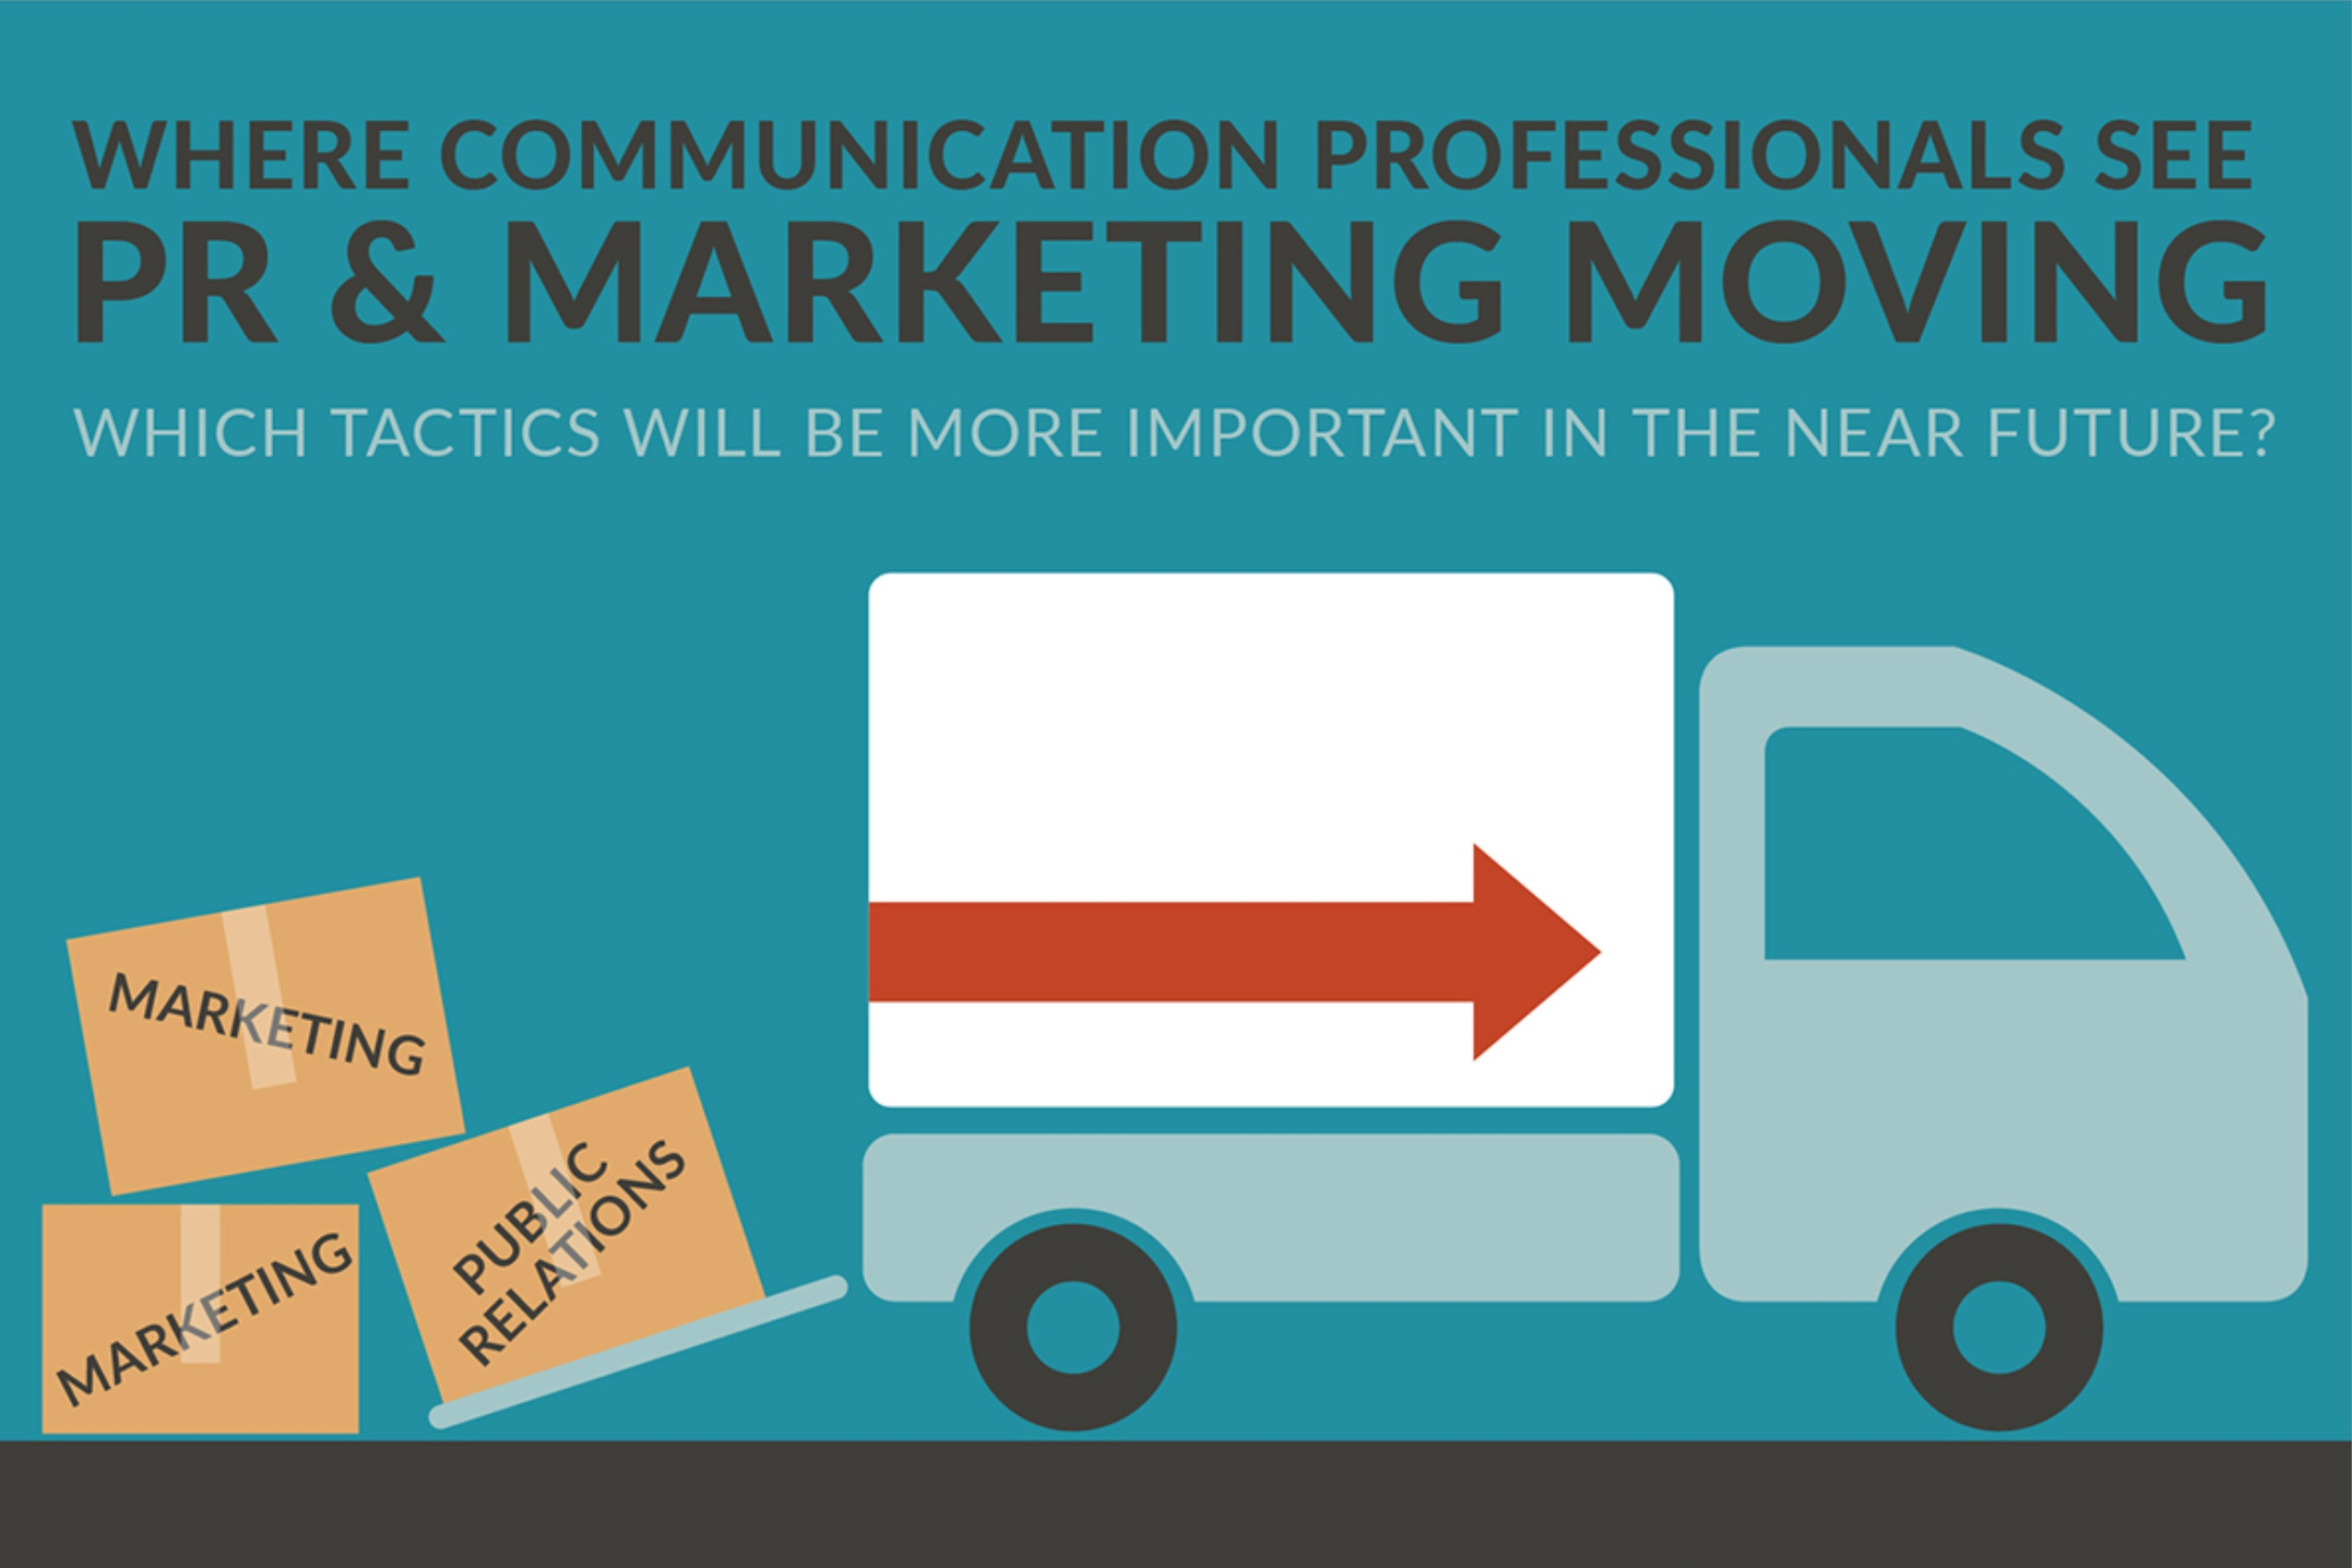 Where Communication Professionals see PR & Marketing Moving (infographic)